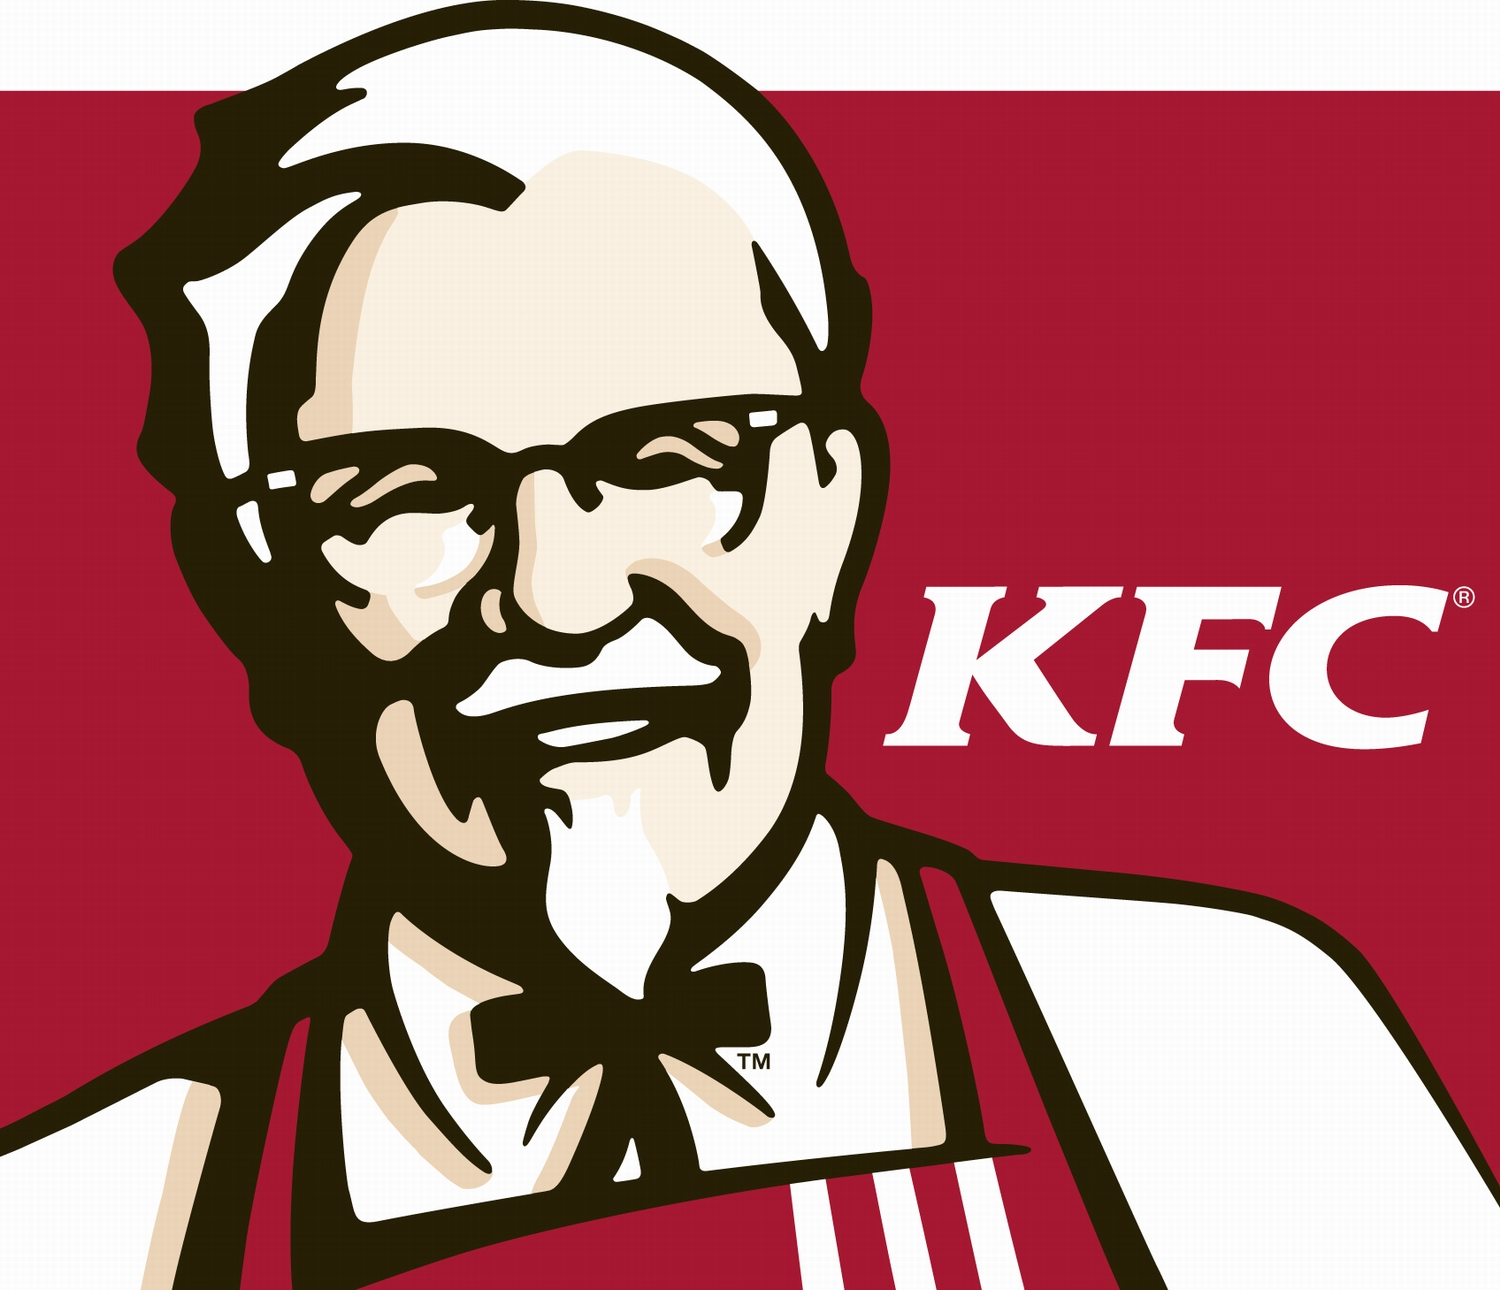 operatiom process of kfc Free essay: by applying the operating process, kfc's staffs welcomes customers and receive their order with friendly smile and good communication, the.